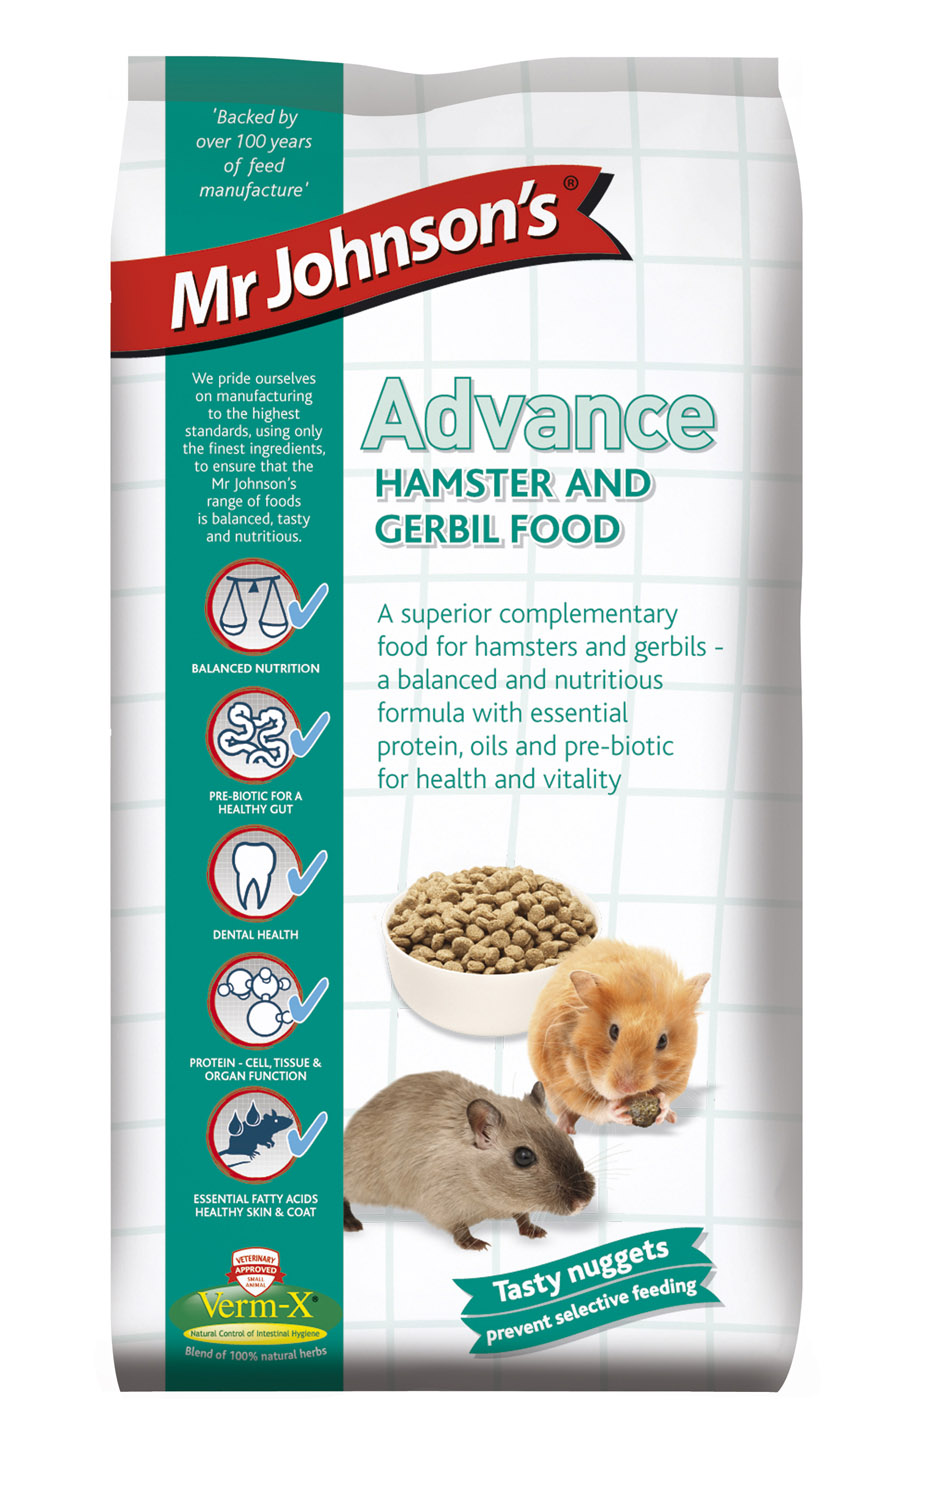 Mr. Johnson's Advance Hamster & Gerbil Food